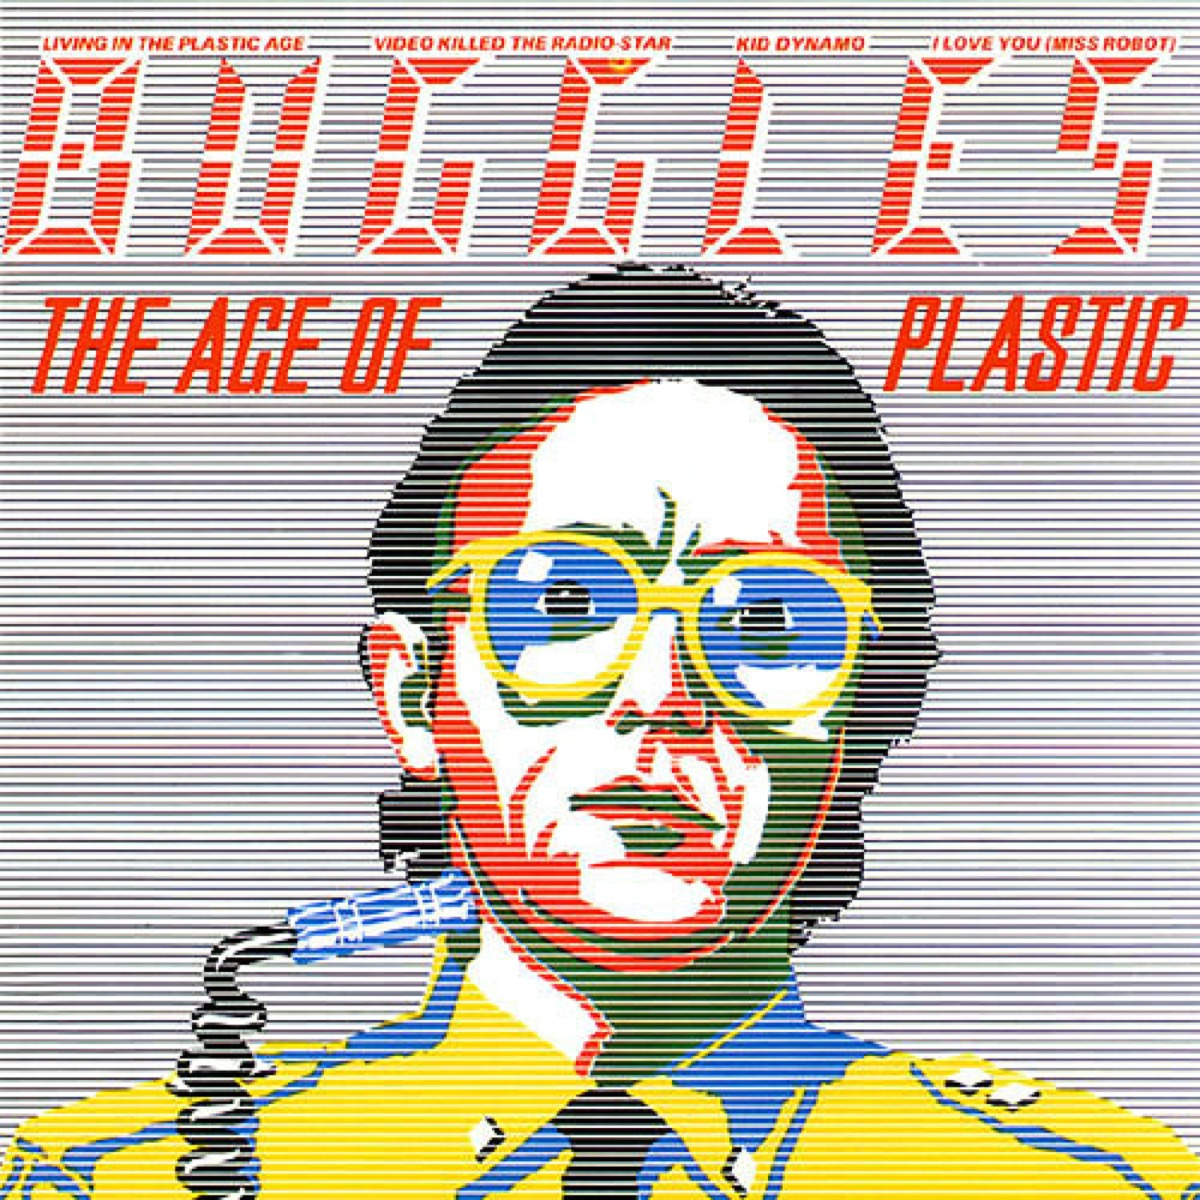 The Buggles Video Killed The Radio Star 1980s one-hit wonders